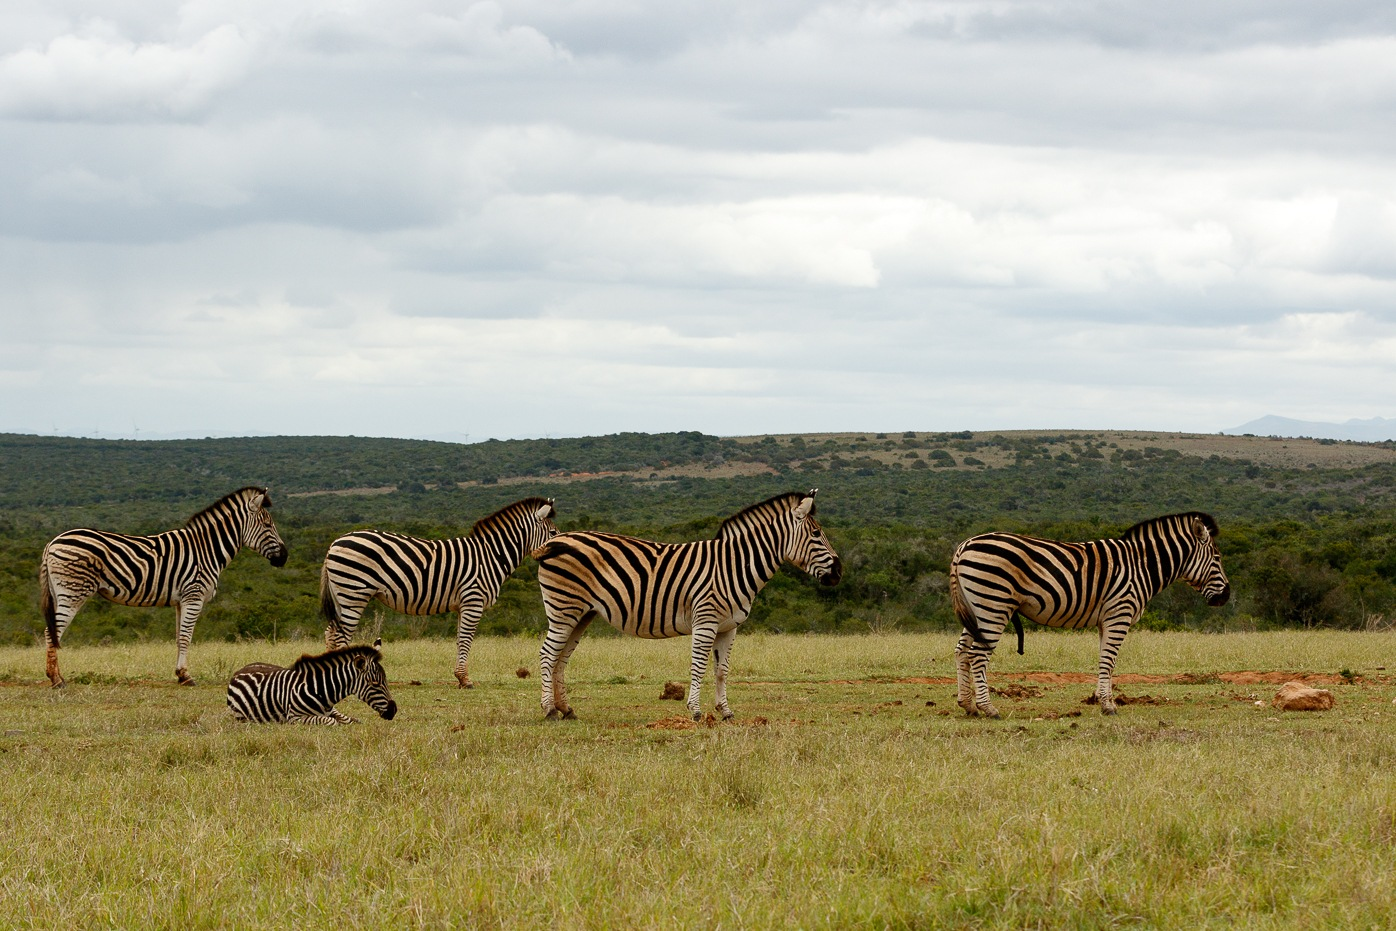 Zebras standing in a row waiting for some water by Charissa de Scande Lotter